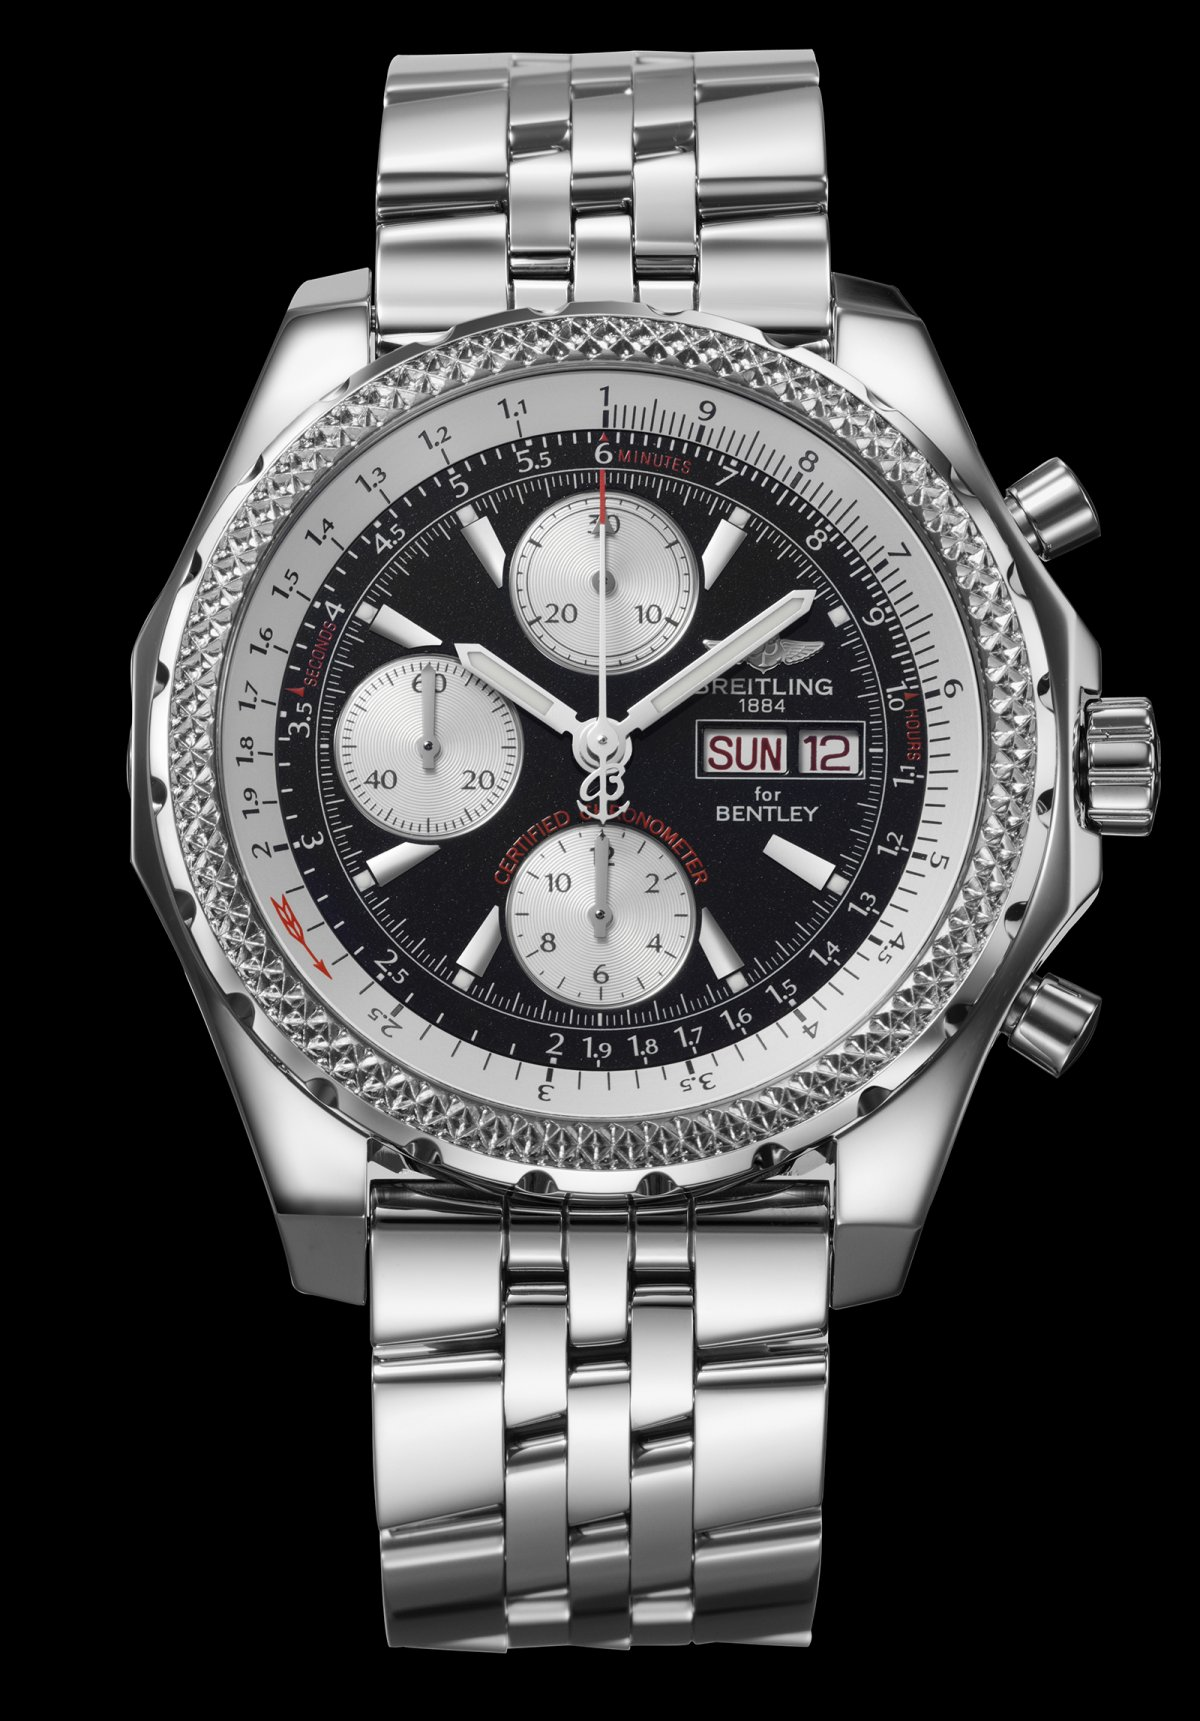 watches r comments breitling fake realfake real bentley for